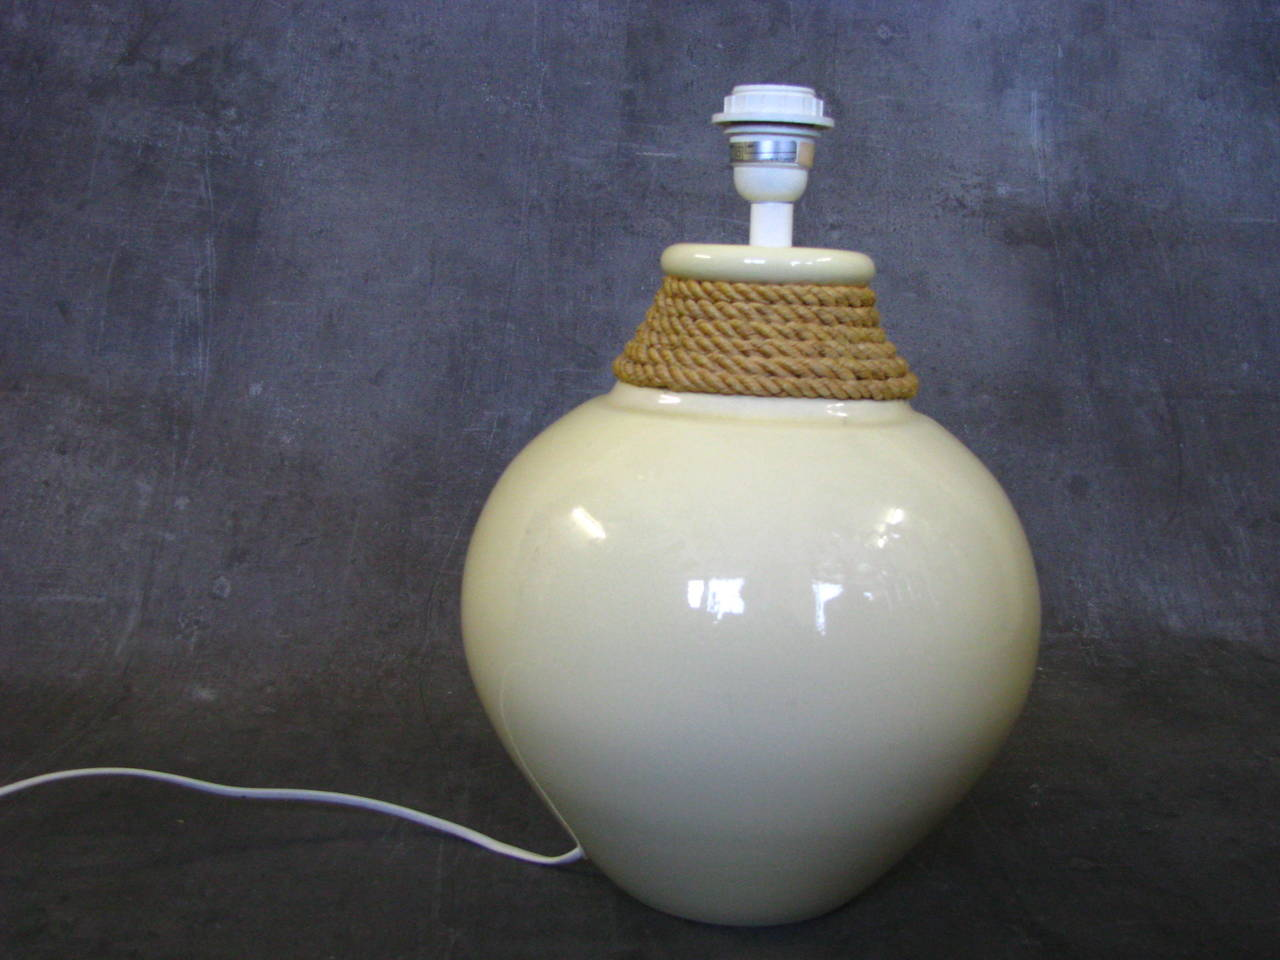 Large 1950s Rope Table Lamp by Audoux and Minet, France For Sale 2